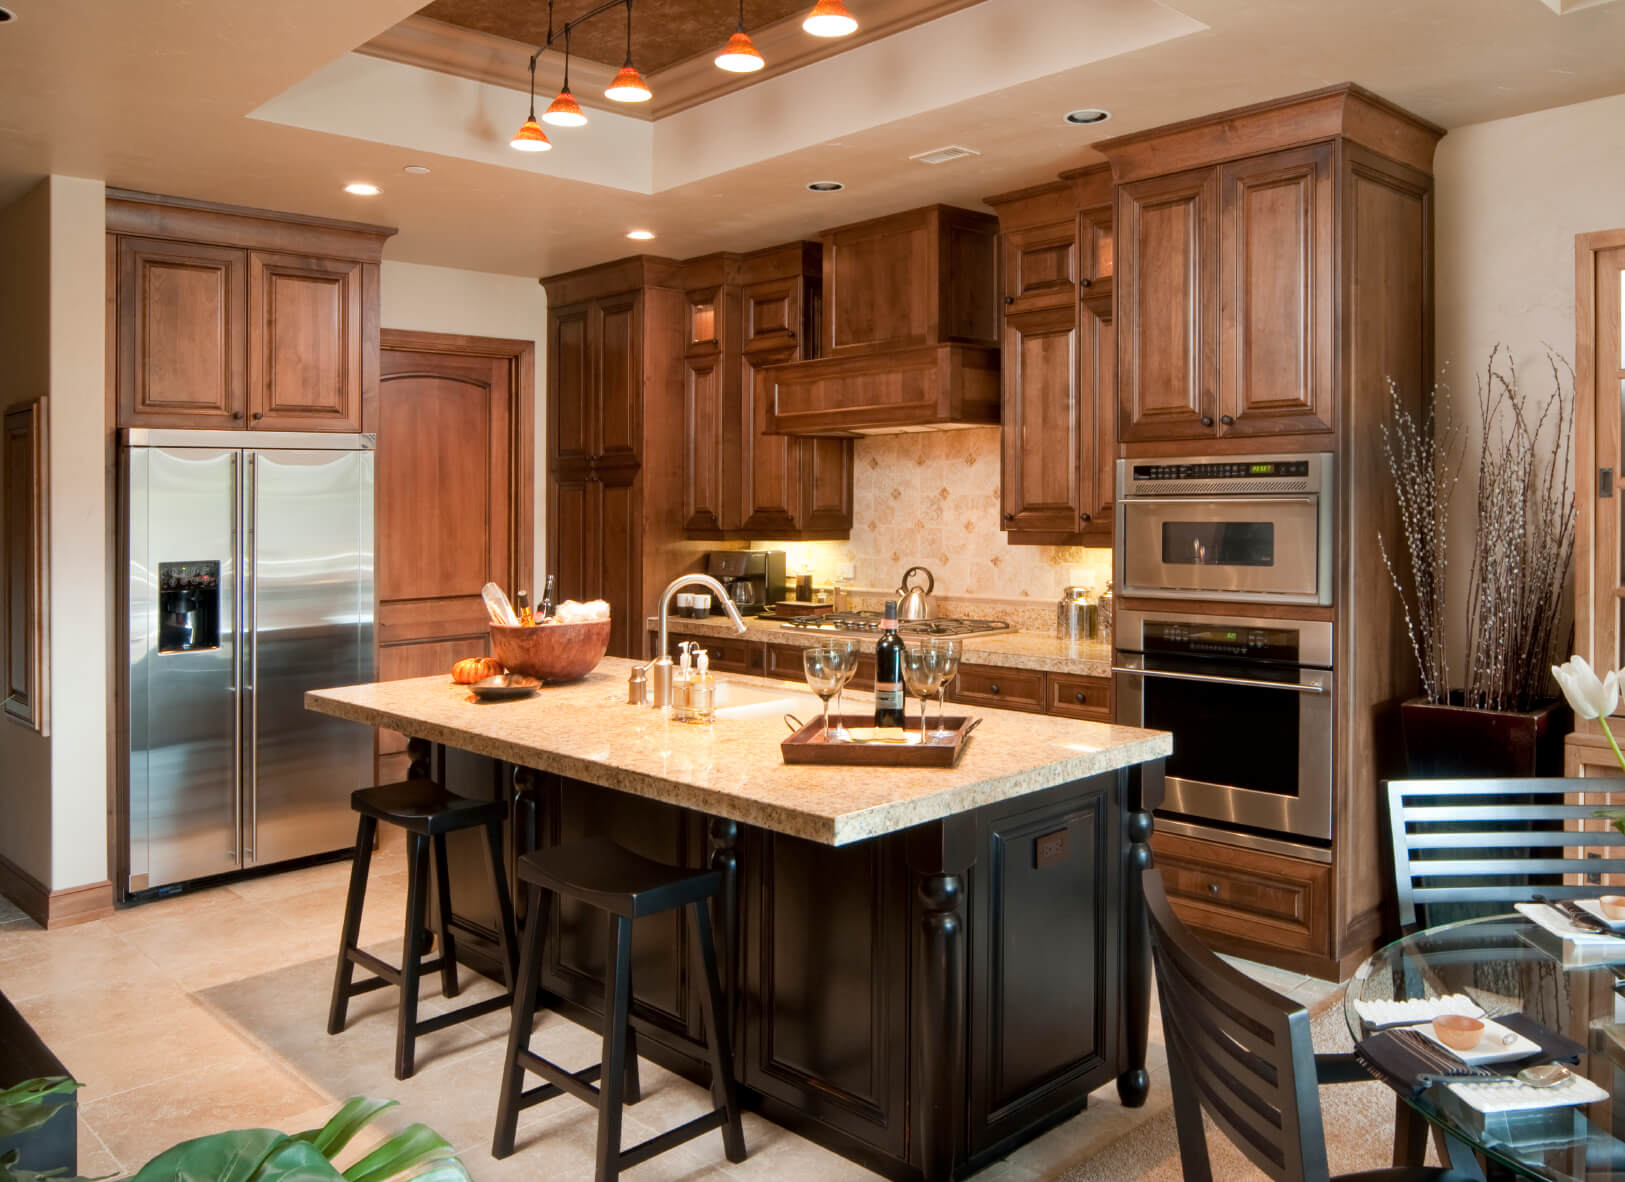 black wood and marble topped island commands center of this kitchen